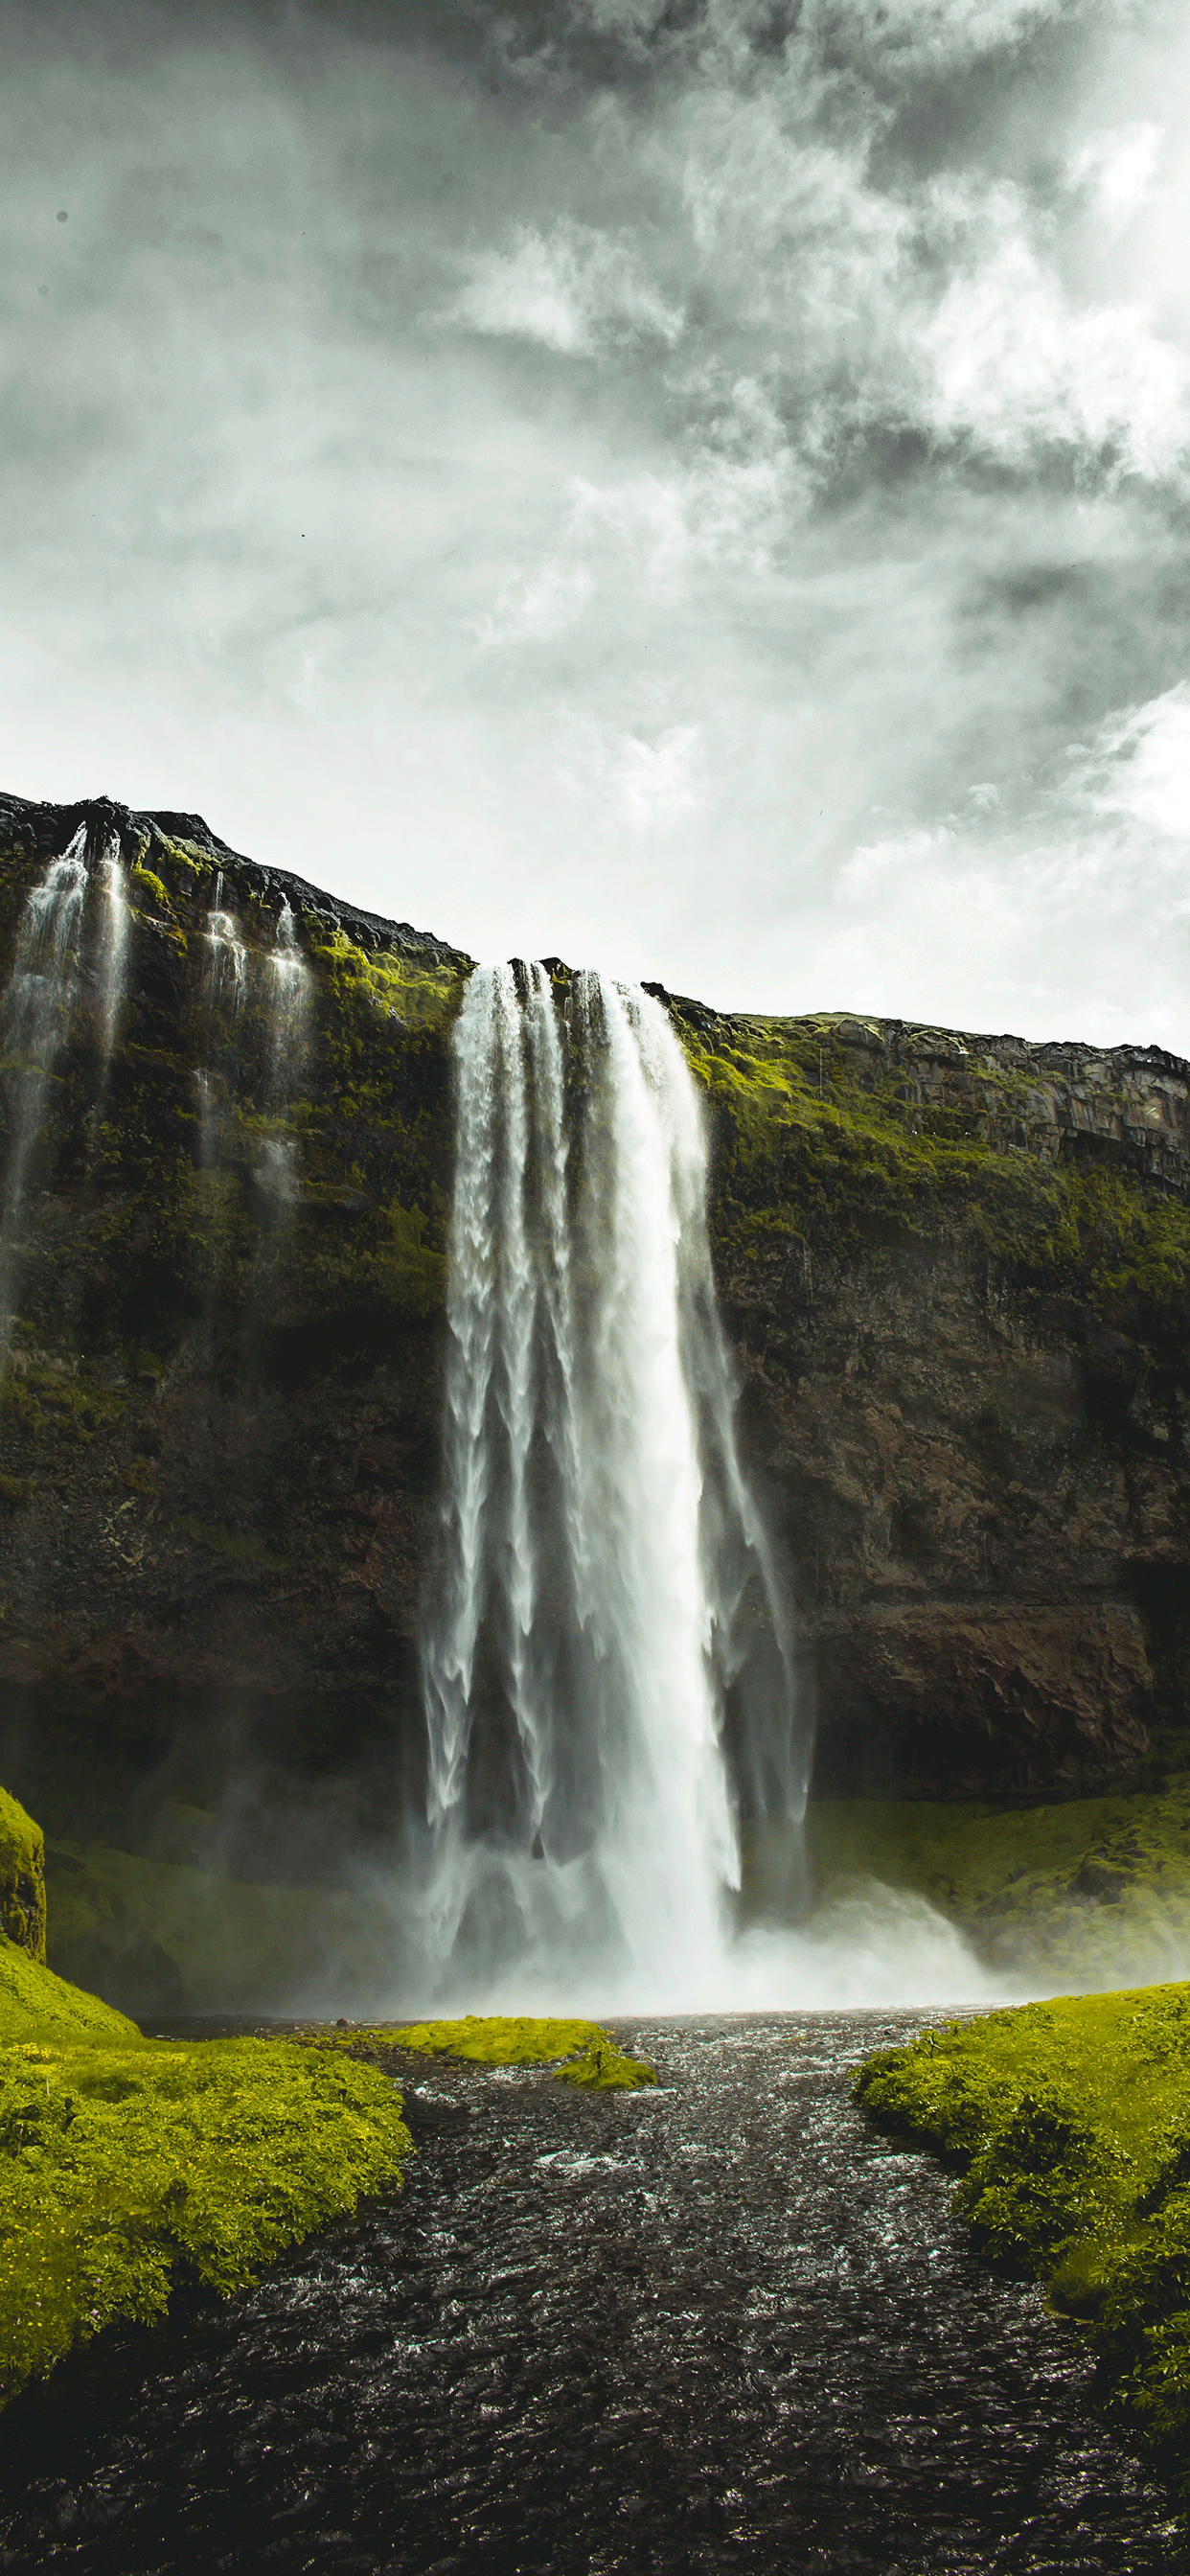 iPhone wallpaper iceland seljalandsfoss Fonds d'écran iPhone du 18/03/2019